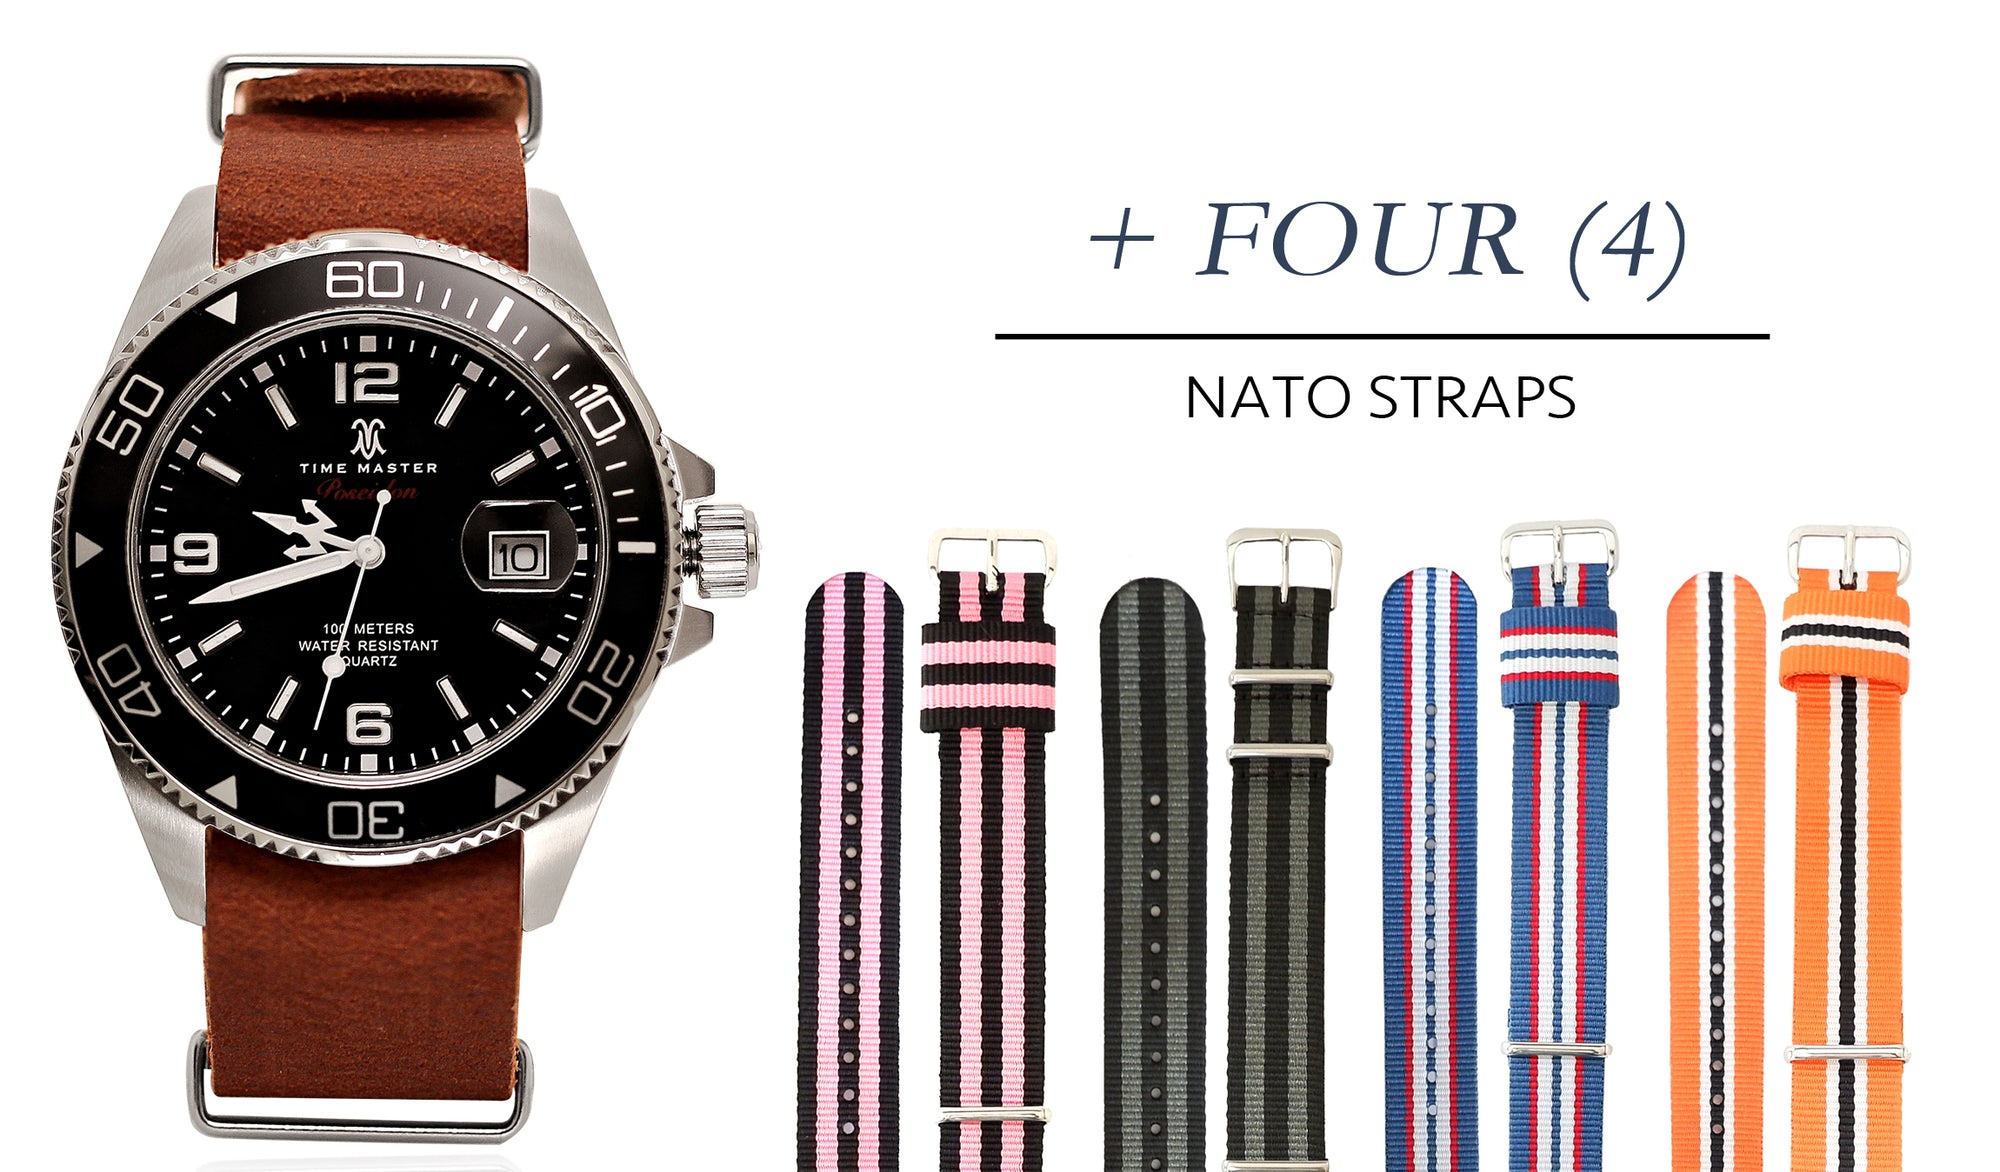 Poseidon Leather + ALL Four NATO Straps